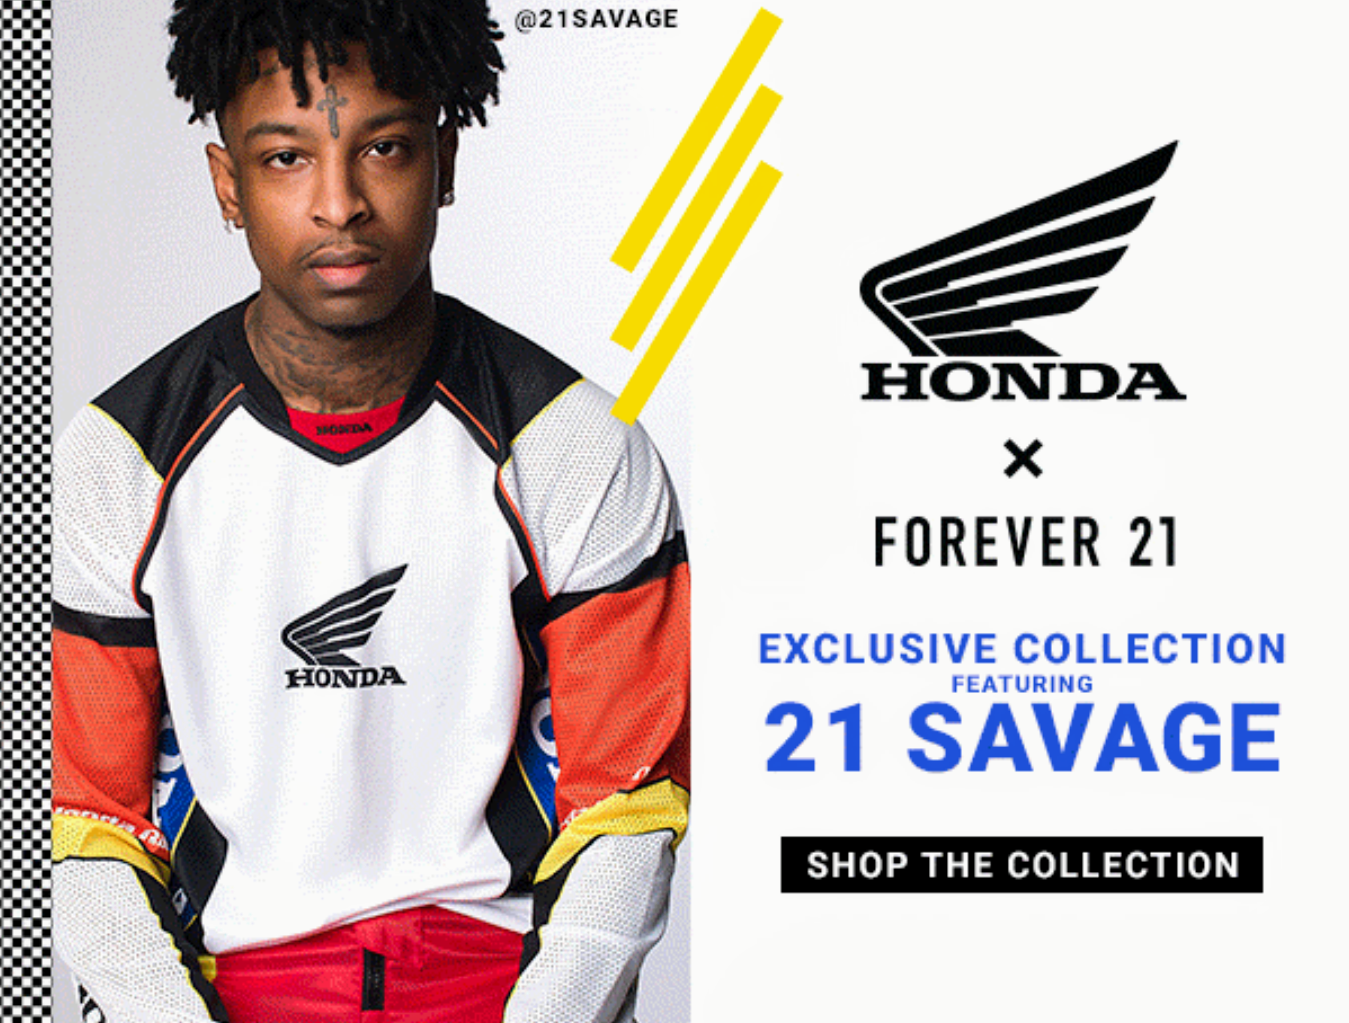 Exclusive Honda Collection Feat 21 Savage Holyoke Mall